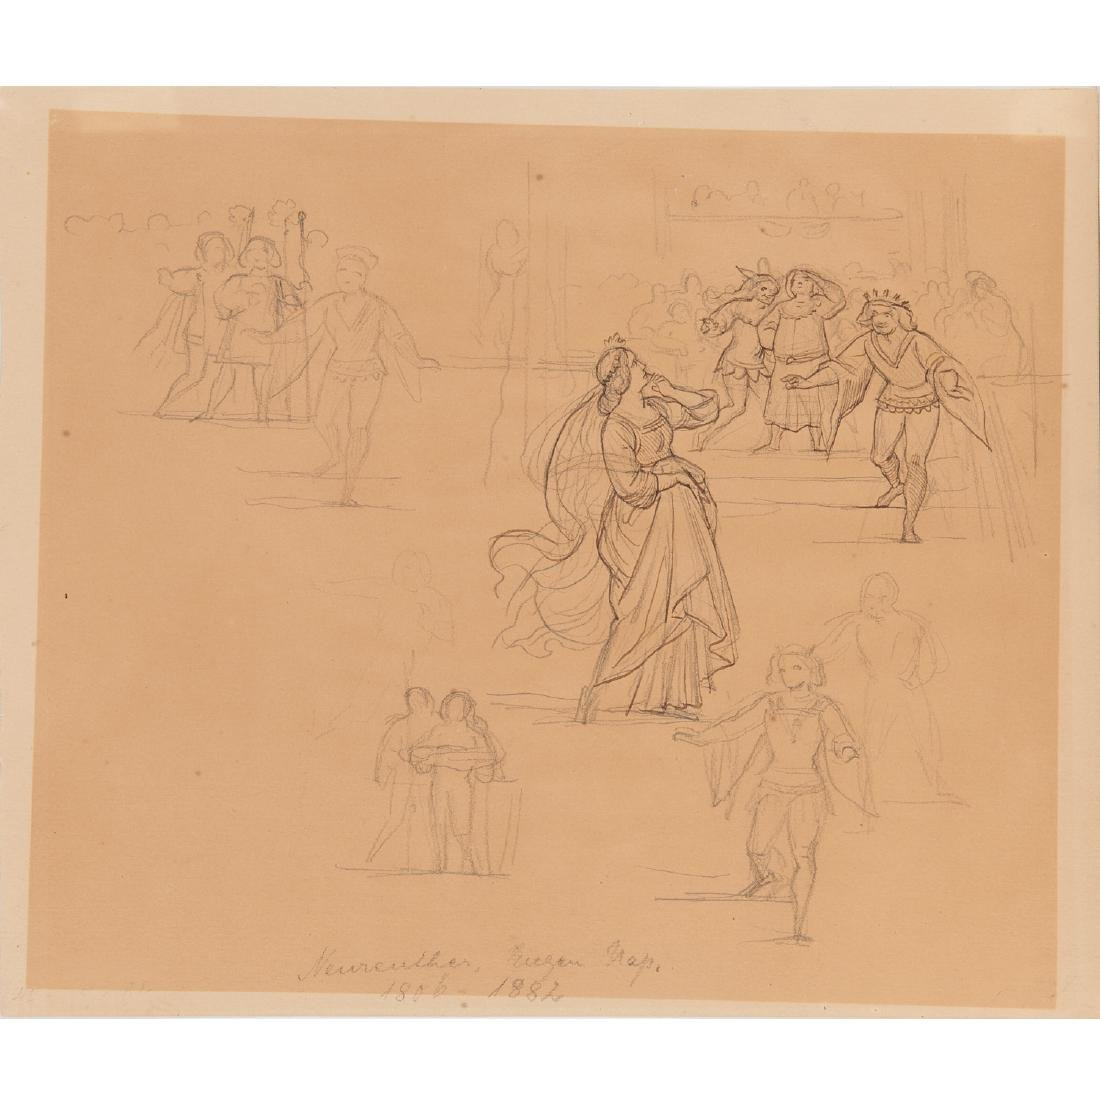 Eugen Neureuther, drawing, c. 1840